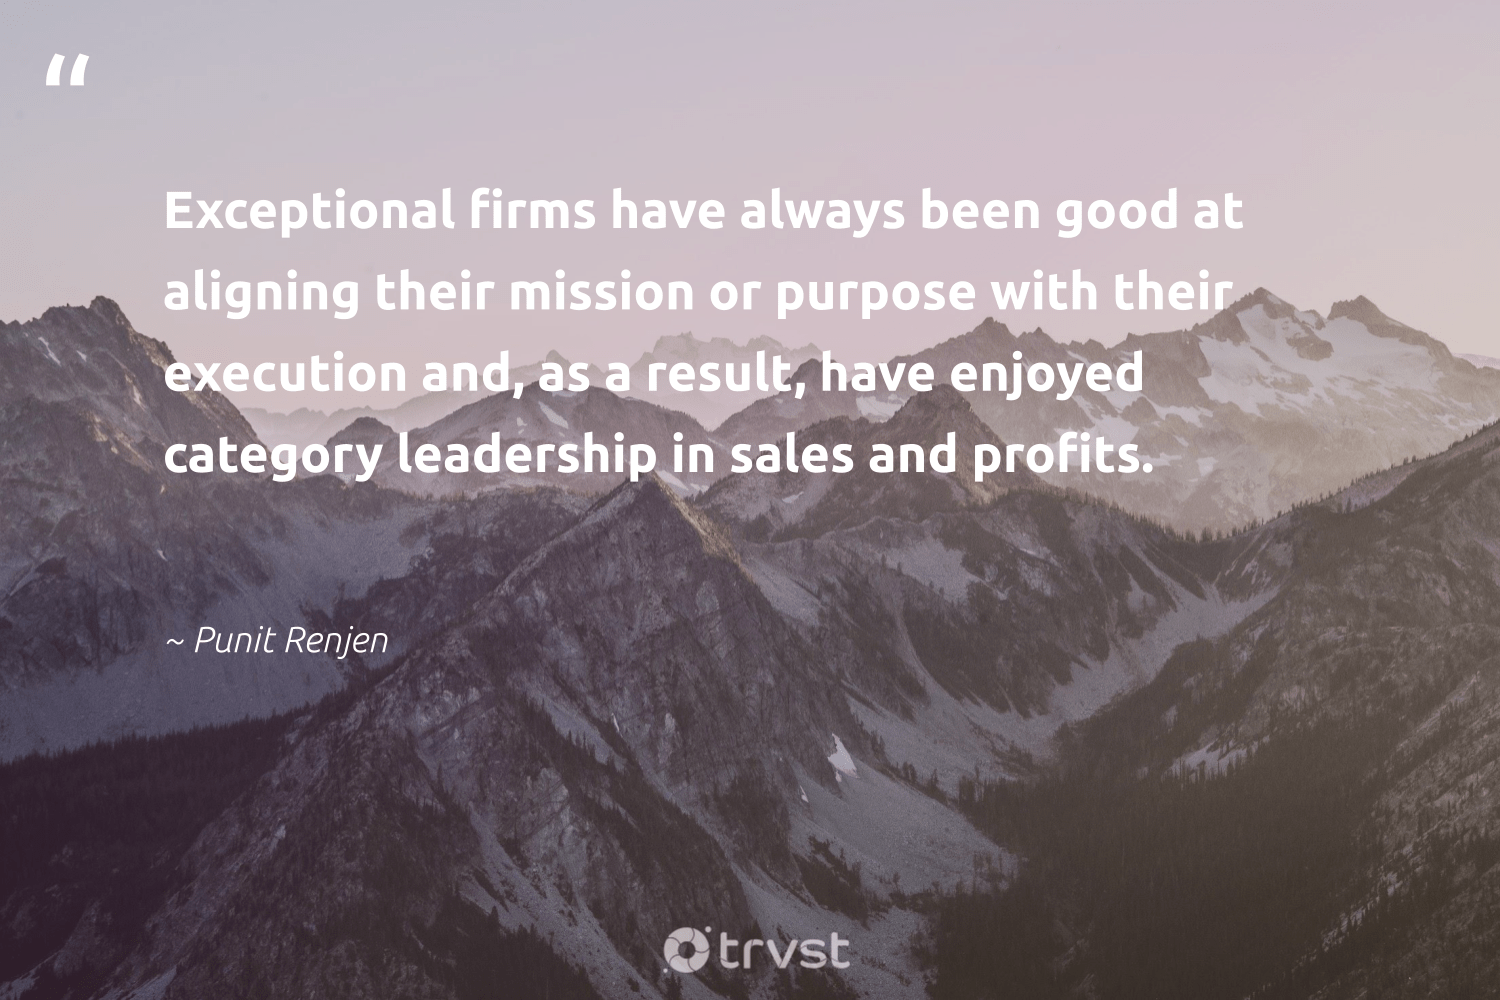 """Exceptional firms have always been good at aligning their mission or purpose with their execution and, as a result, have enjoyed category leadership in sales and profits.""  - Punit Renjen #trvst #quotes #purpose #leadership #purposedriven #futureofwork #health #gogreen #findingpupose #begreat #nevergiveup #dosomething"